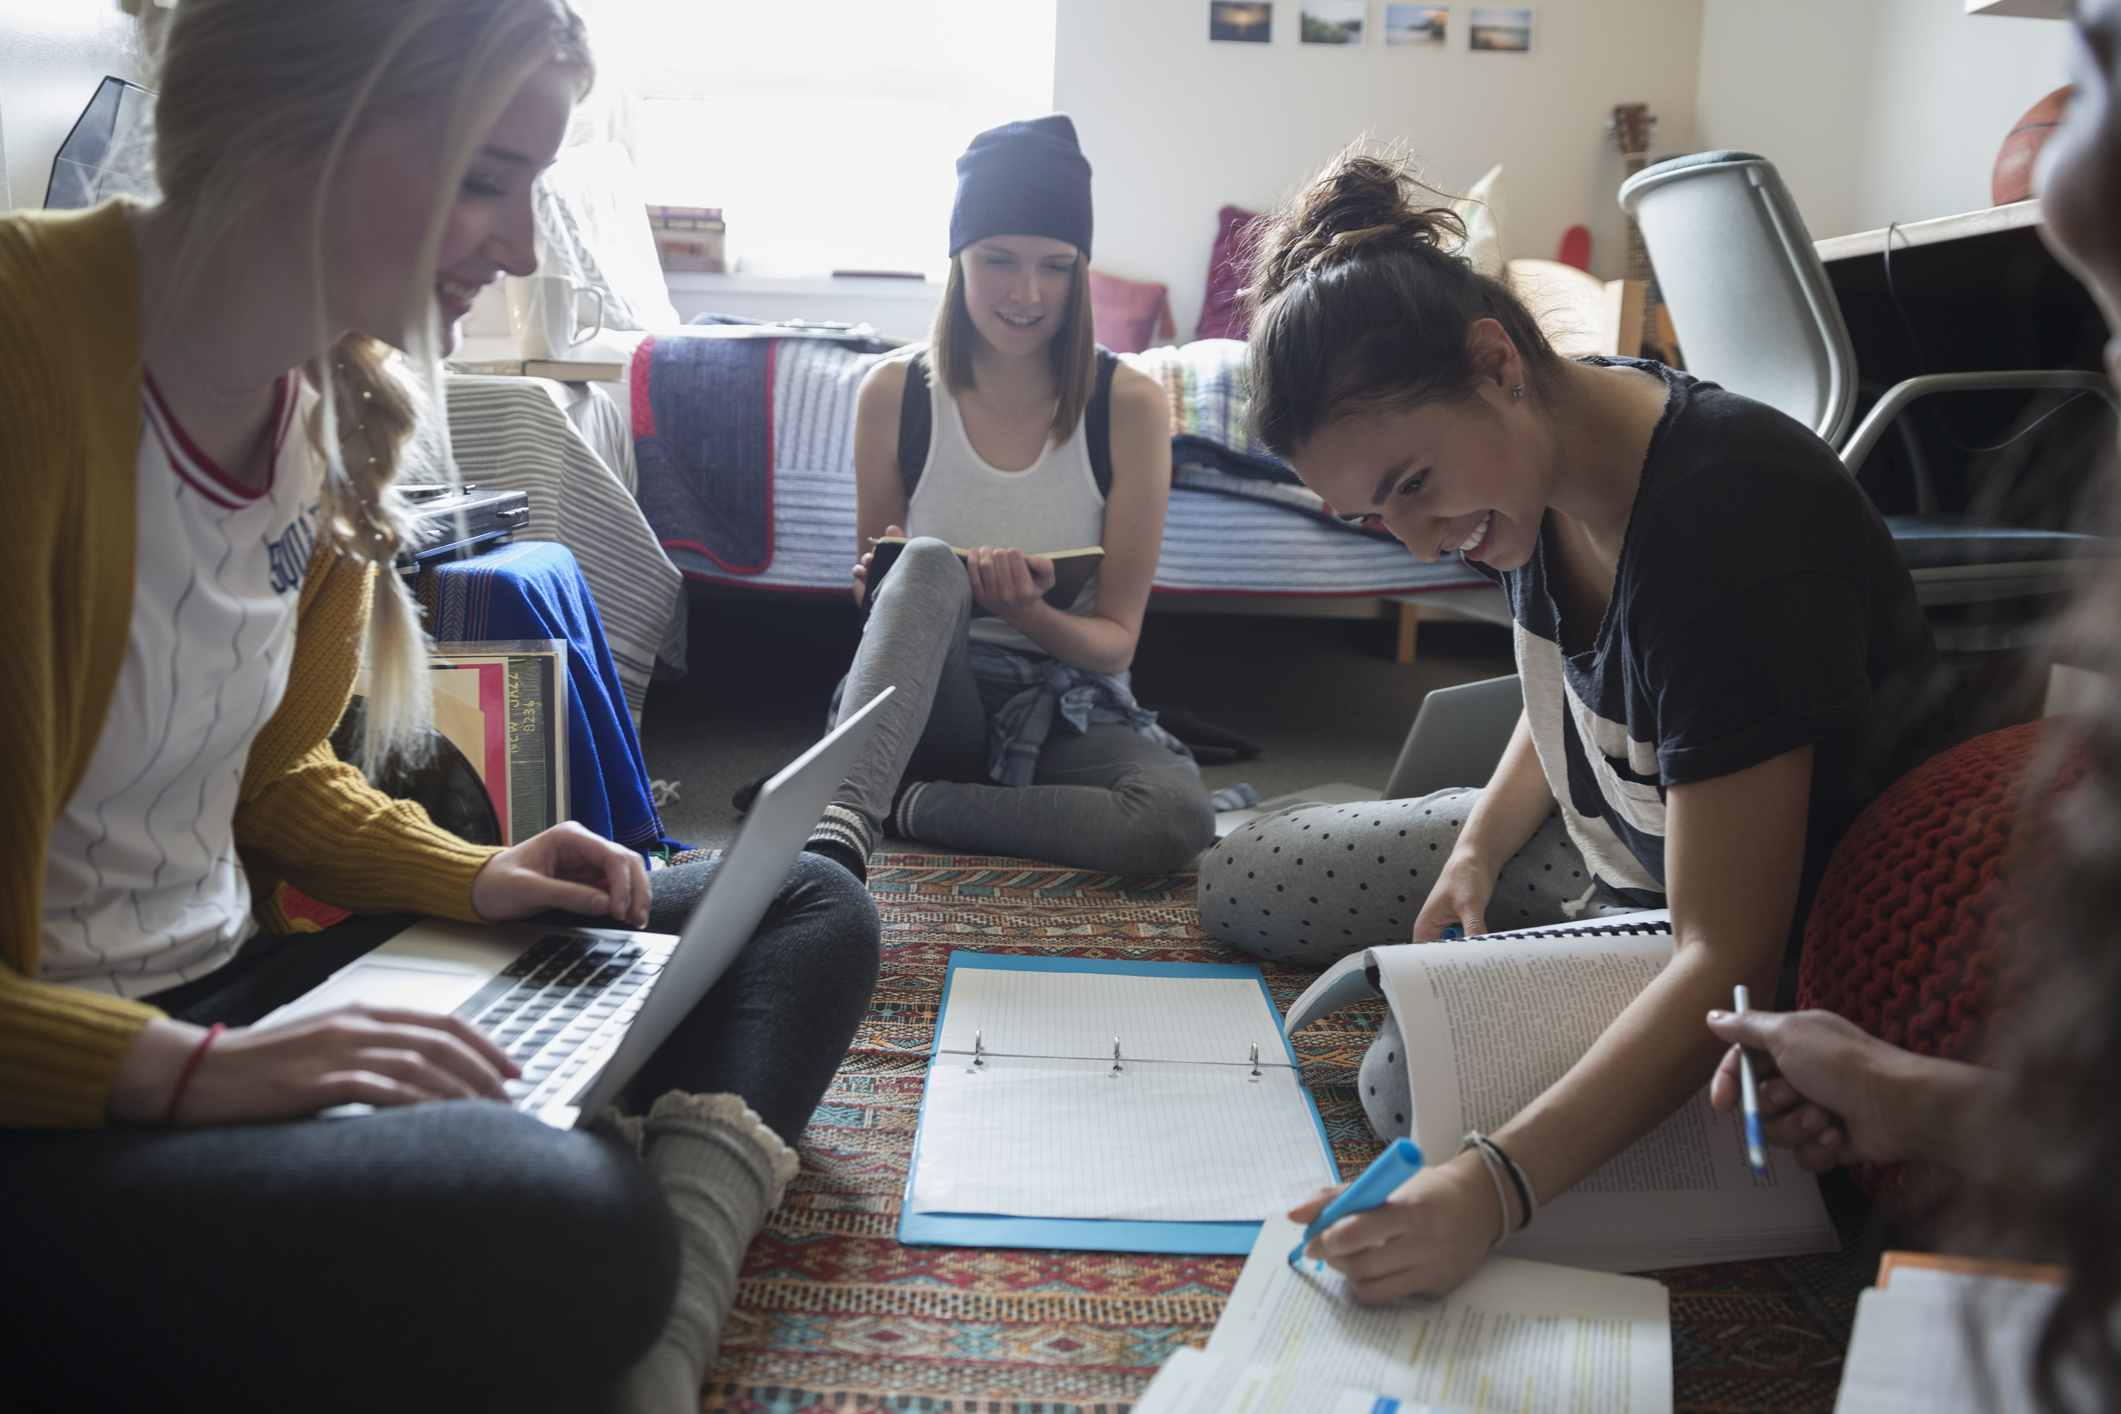 Group of women studying in a dorm room